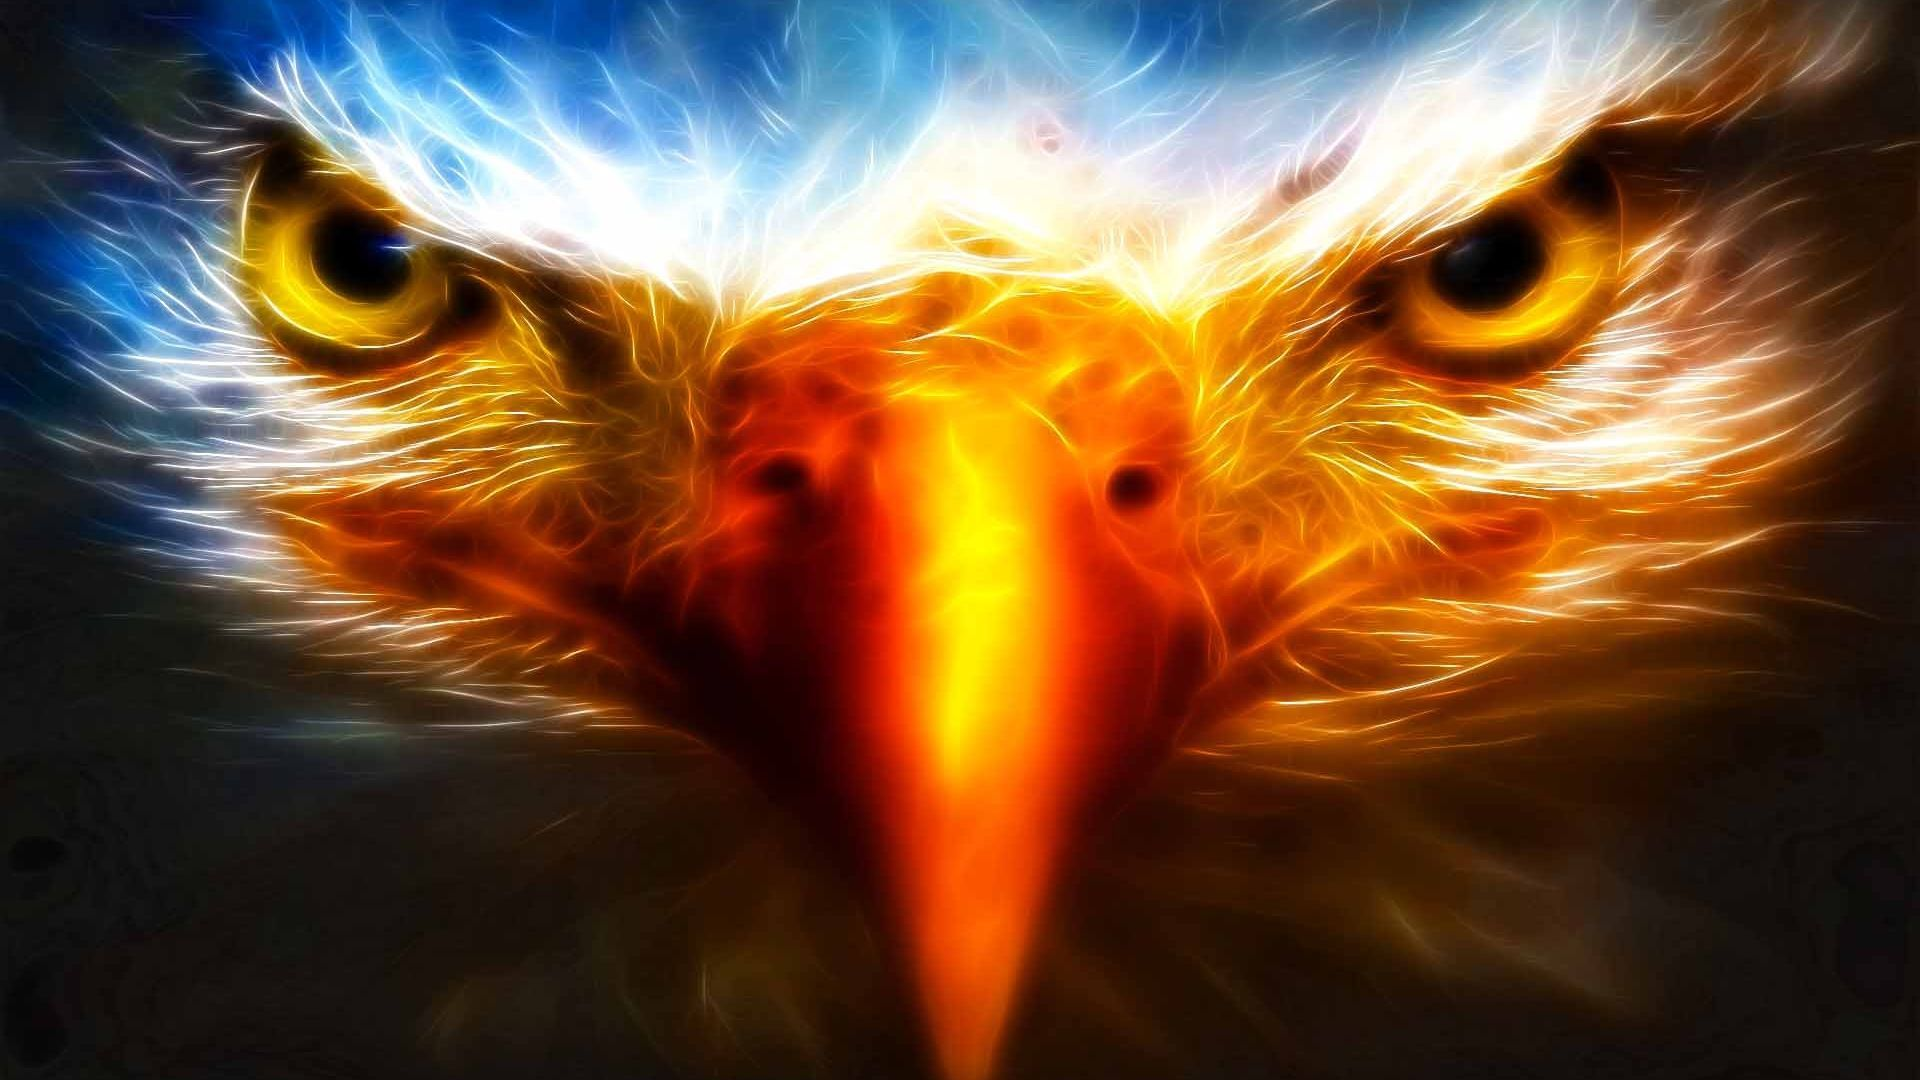 Cool Eagle Wallpapers Top Free Cool Eagle Backgrounds Wallpaperaccess